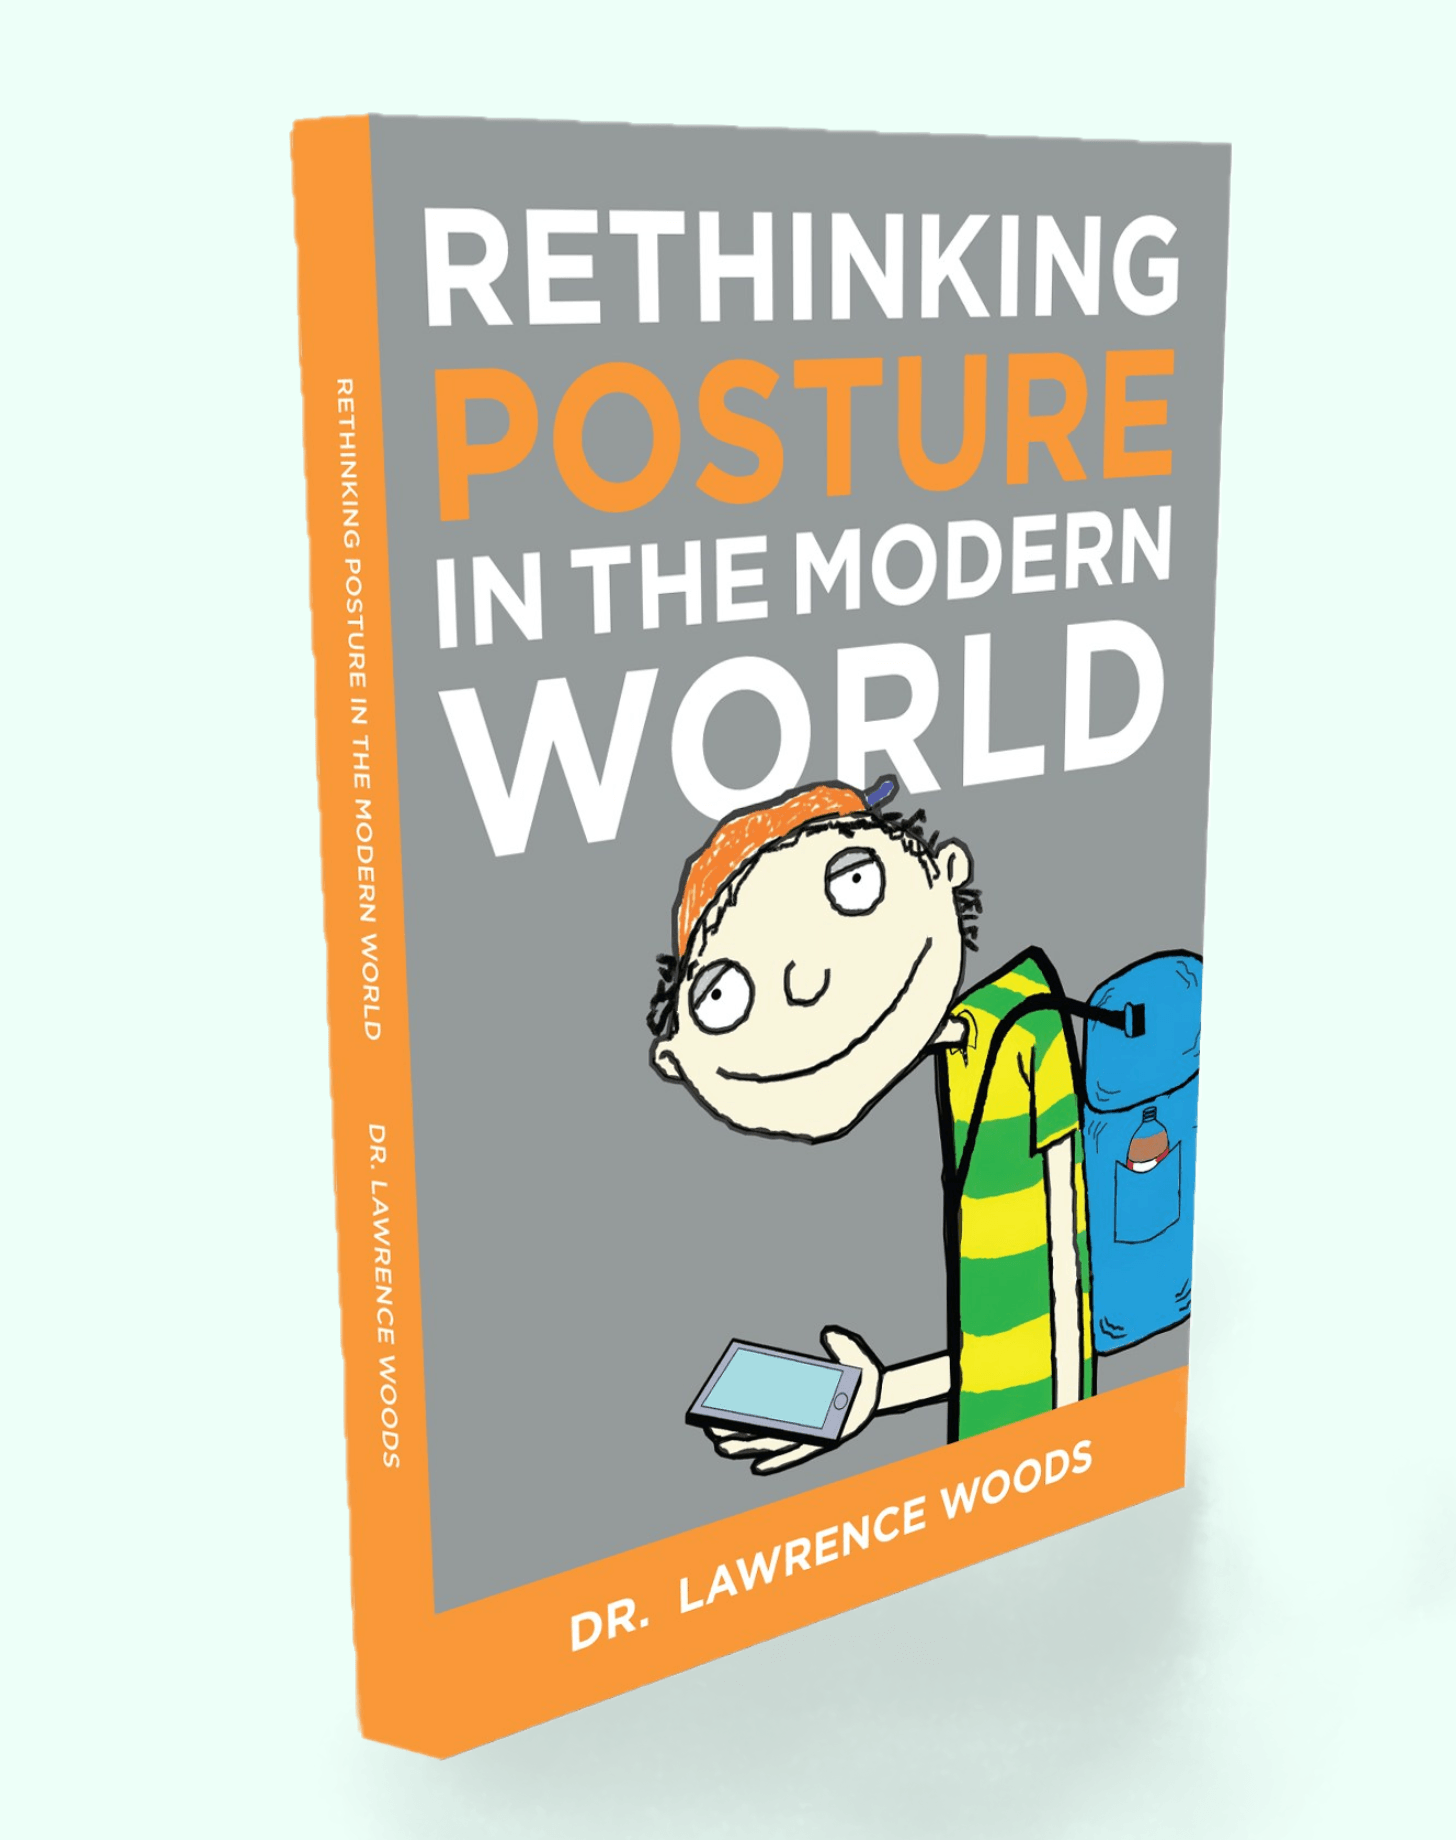 A Fresh New Book That Will Change Your Thinking On Posture